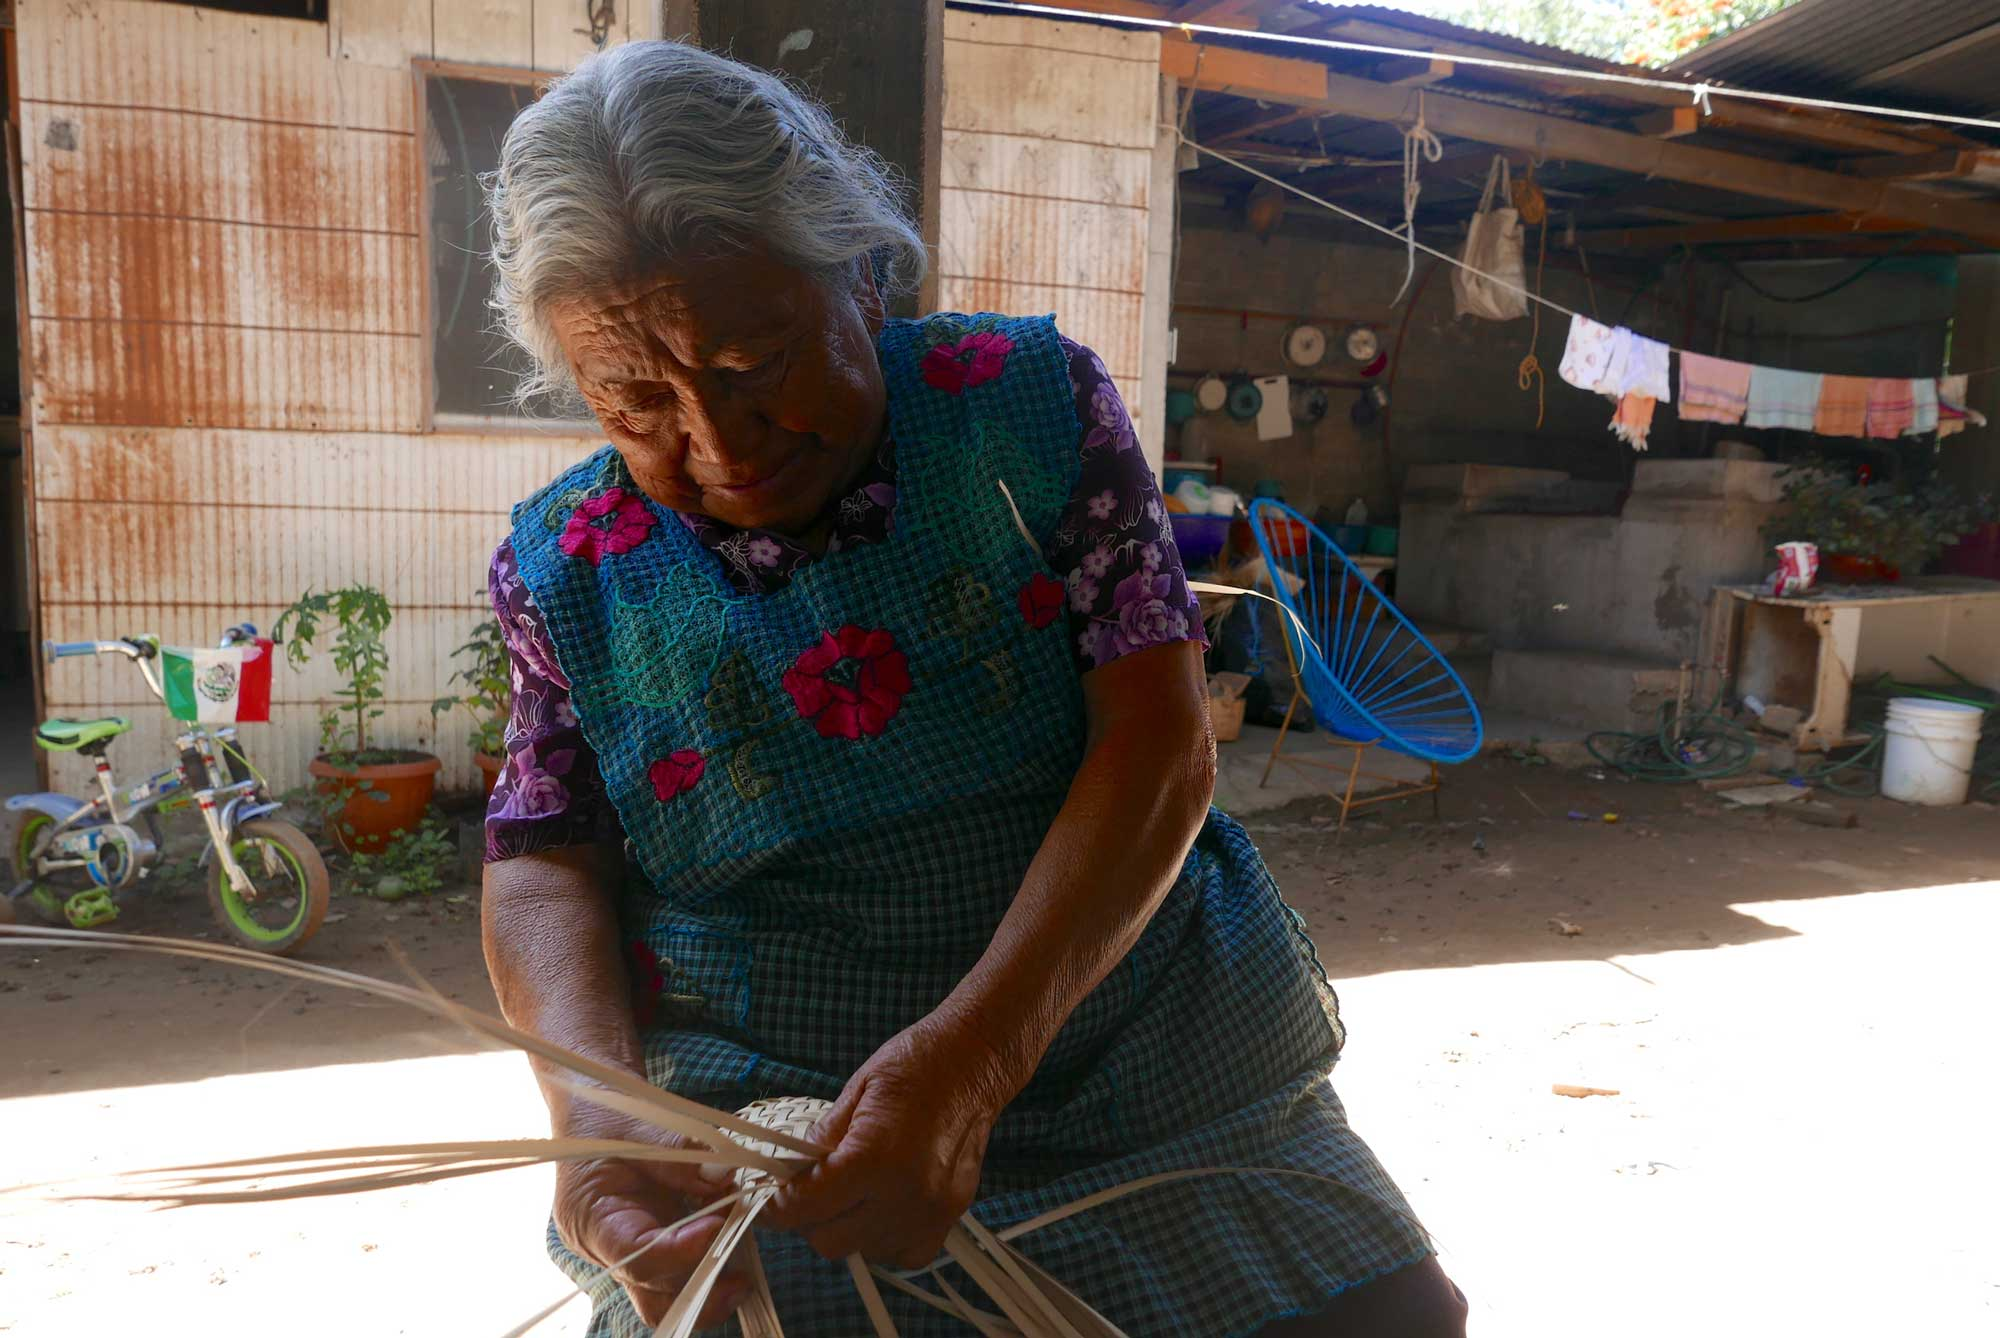 Artisan Palm Weaving Baskets Canastas Oaxaca Mexico